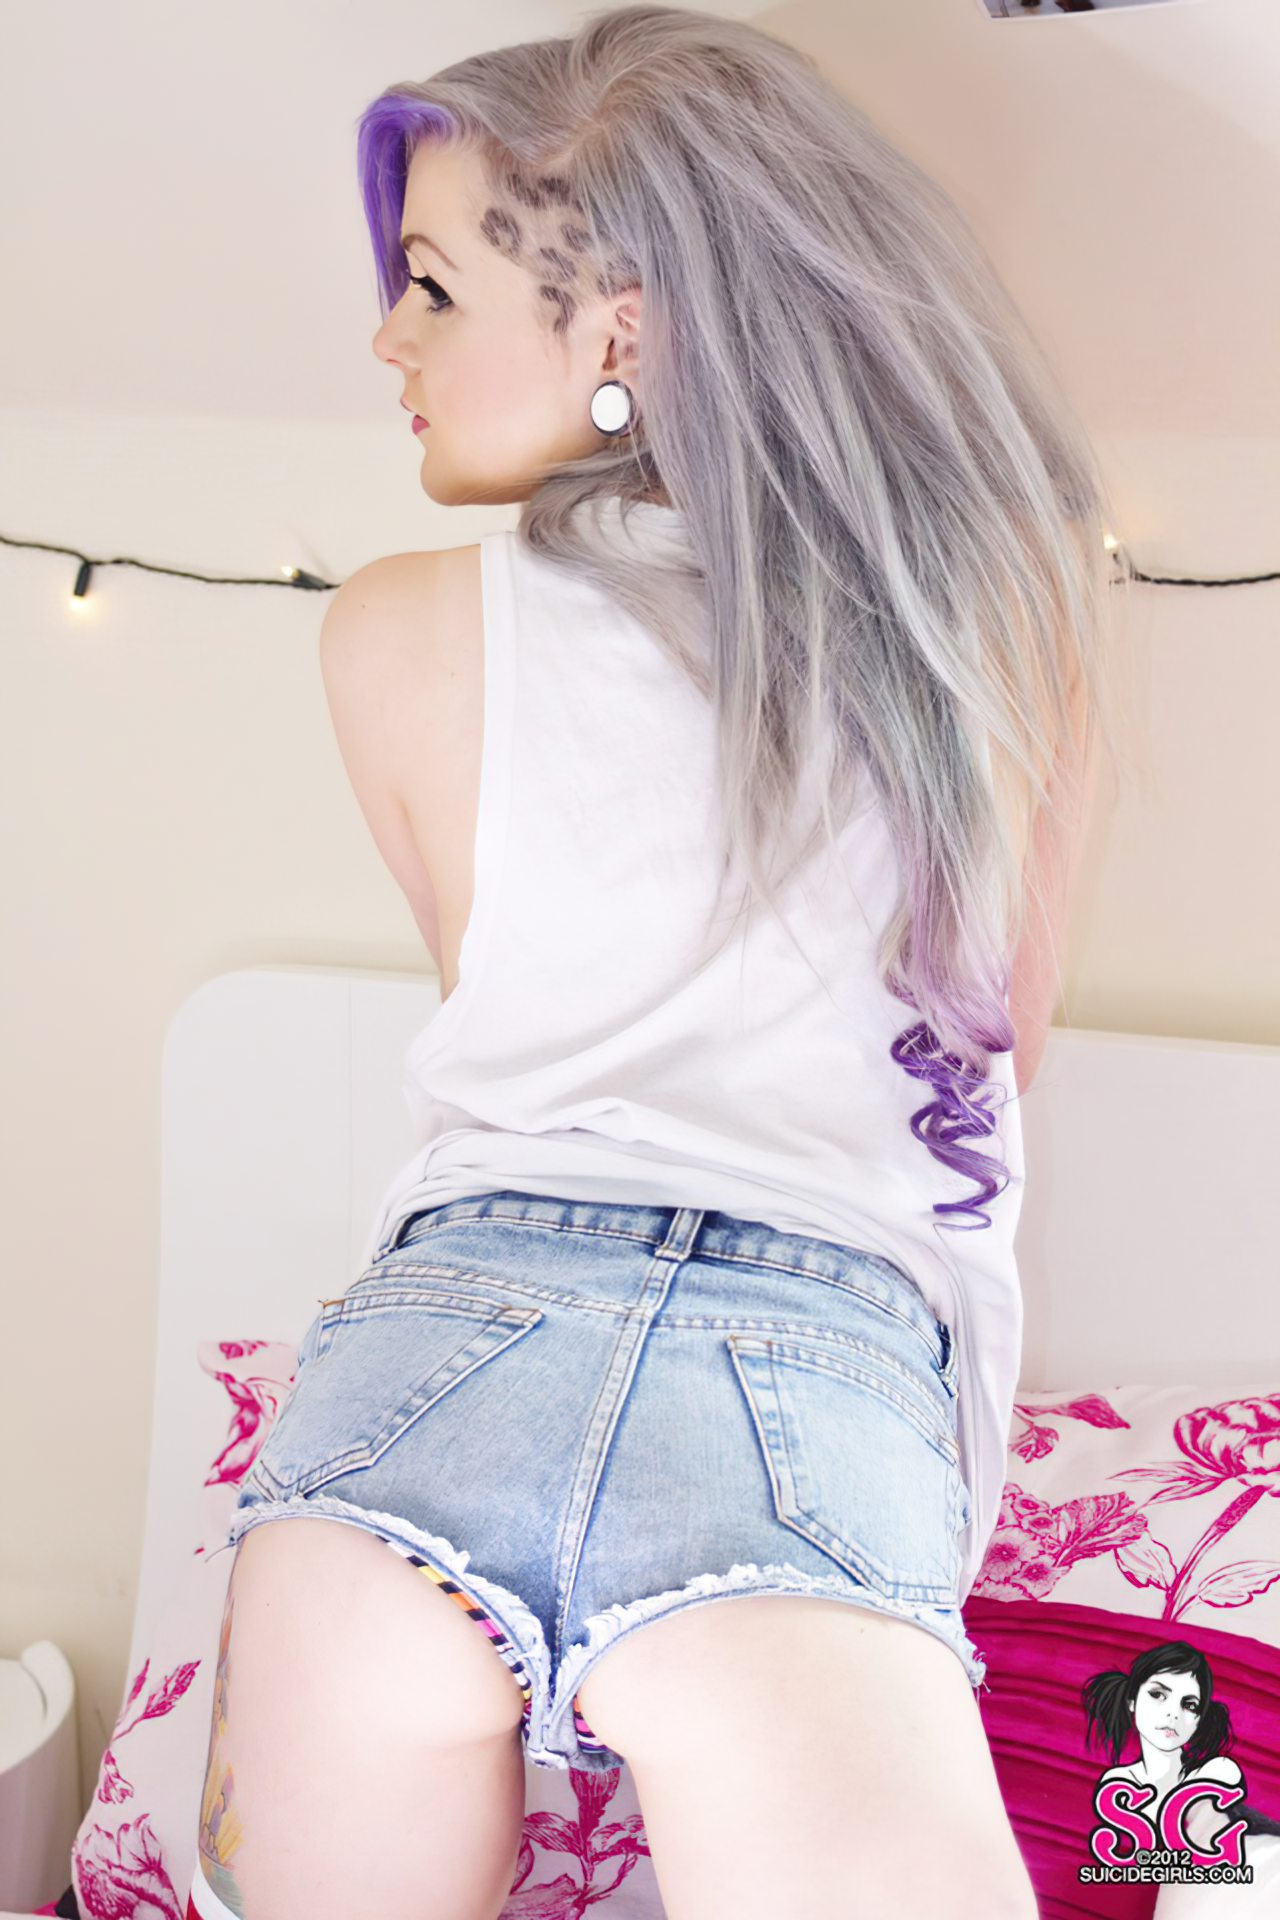 Suicide Girl Sexy (7)